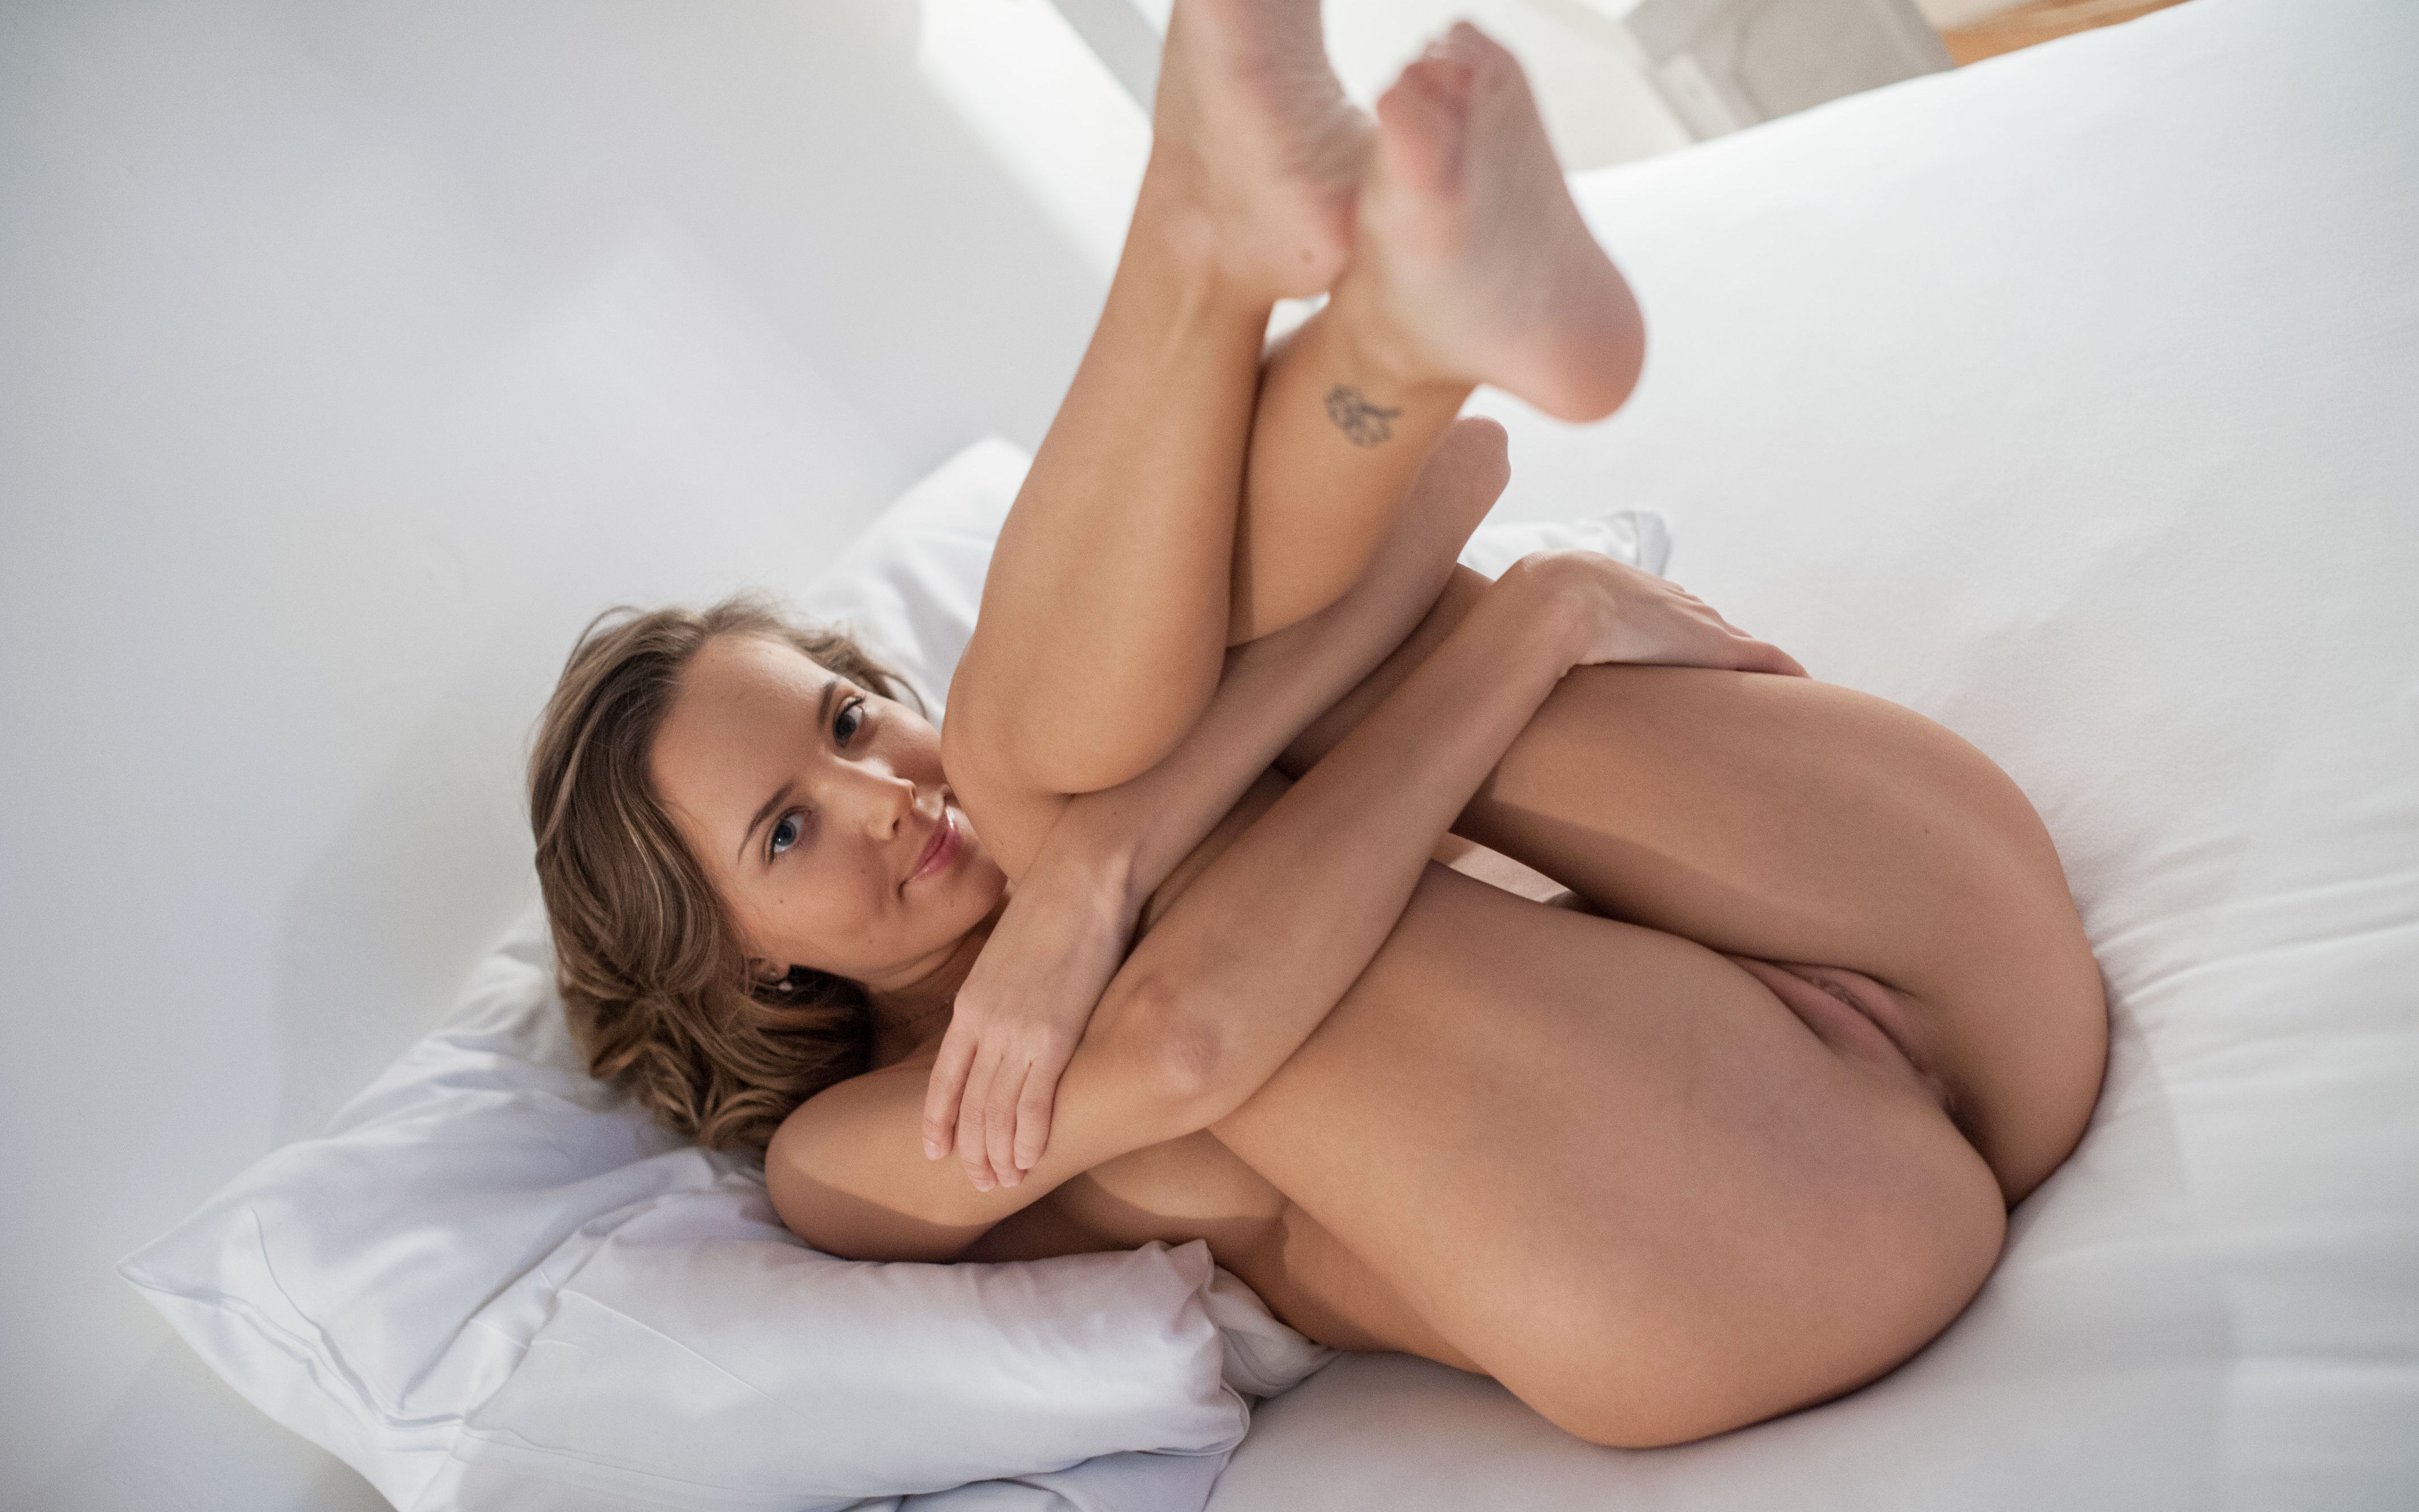 Pussy Katya Clover nude (52 photo), Topless, Leaked, Boobs, lingerie 2015